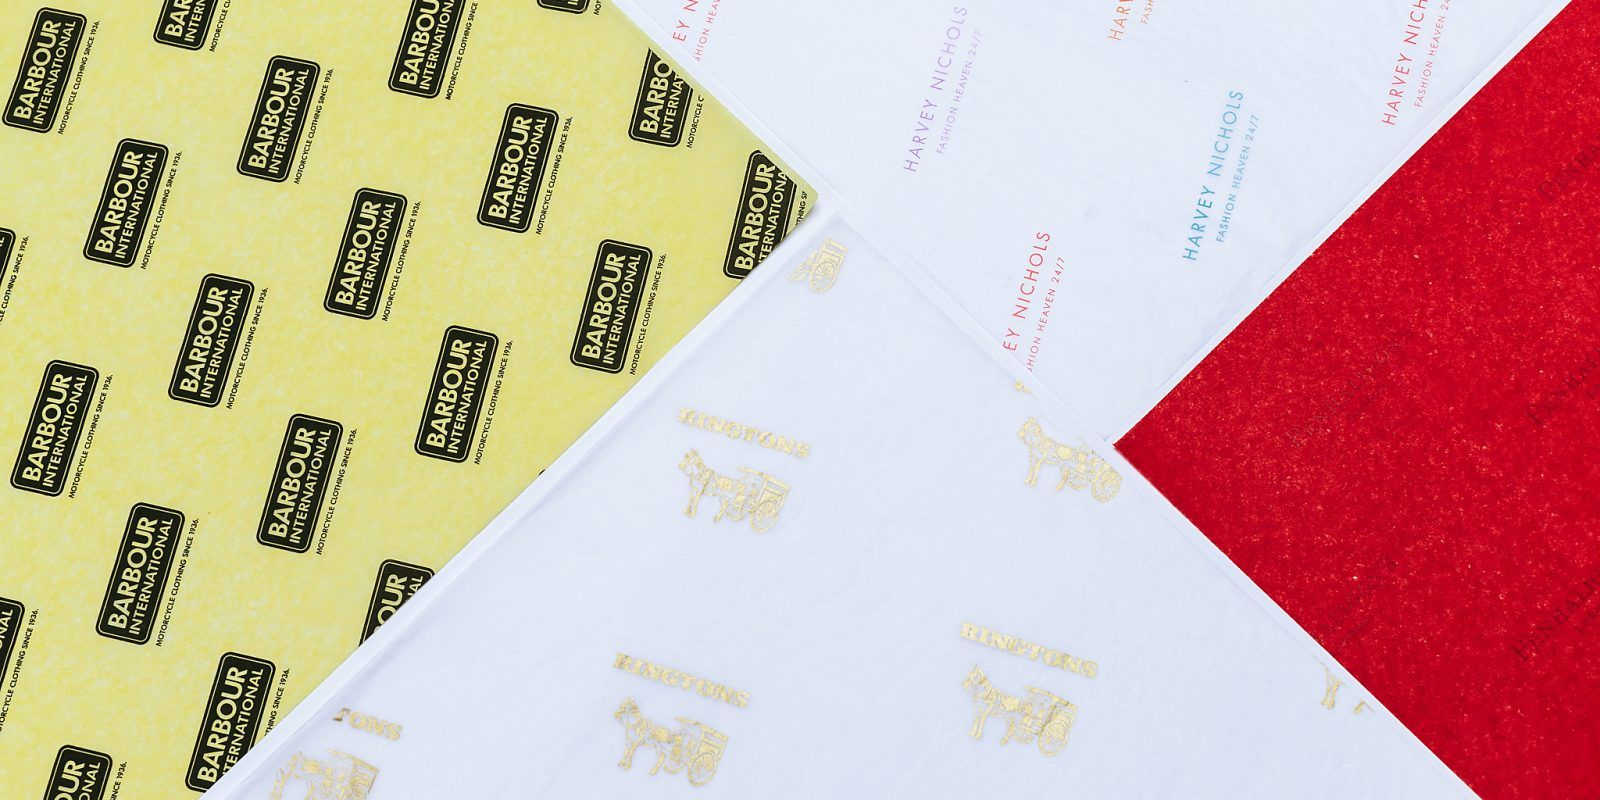 17 GSM Branded Tissue Paper